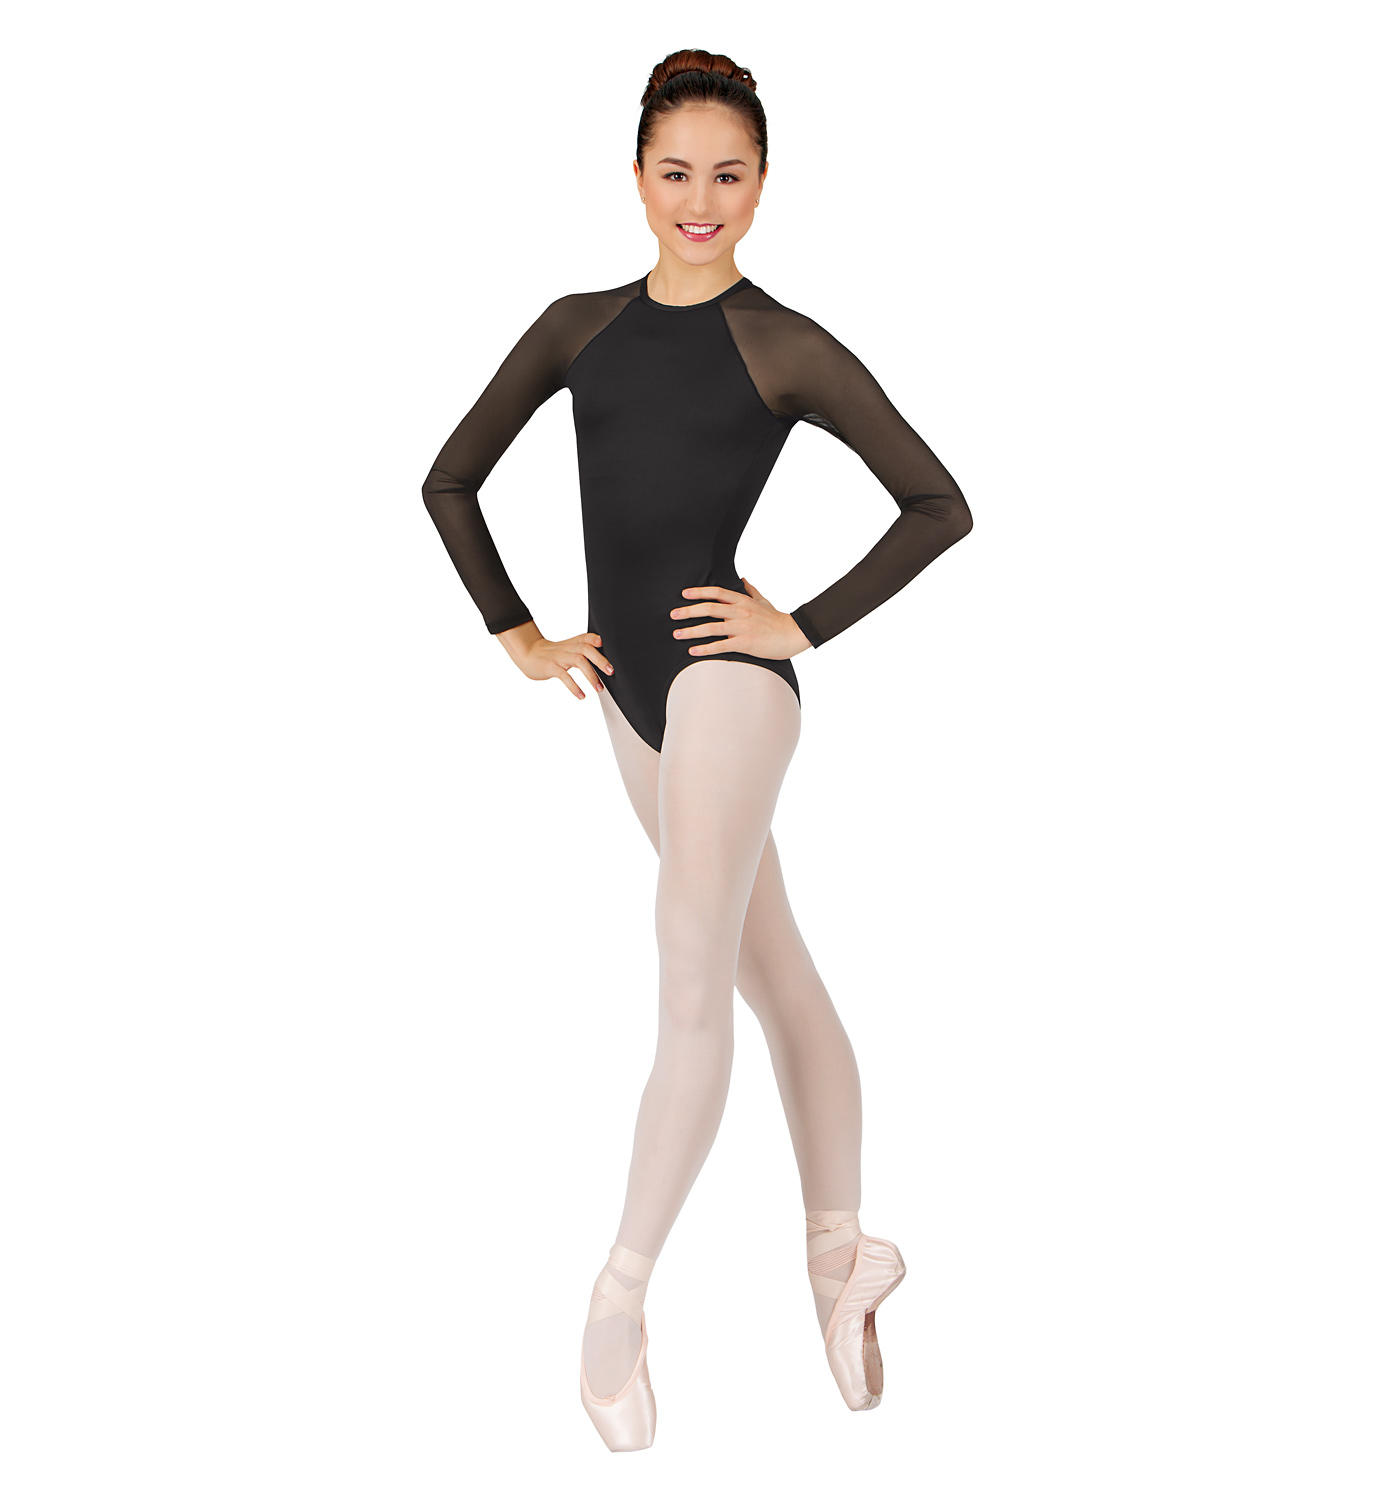 Discount Dance Supply offers a wide variety of dancing gear and clothing. Save on your orders with frequent promo codes and codes for dance teachers. Check out their clearance section and save up to 75% off retail pricing%(52).